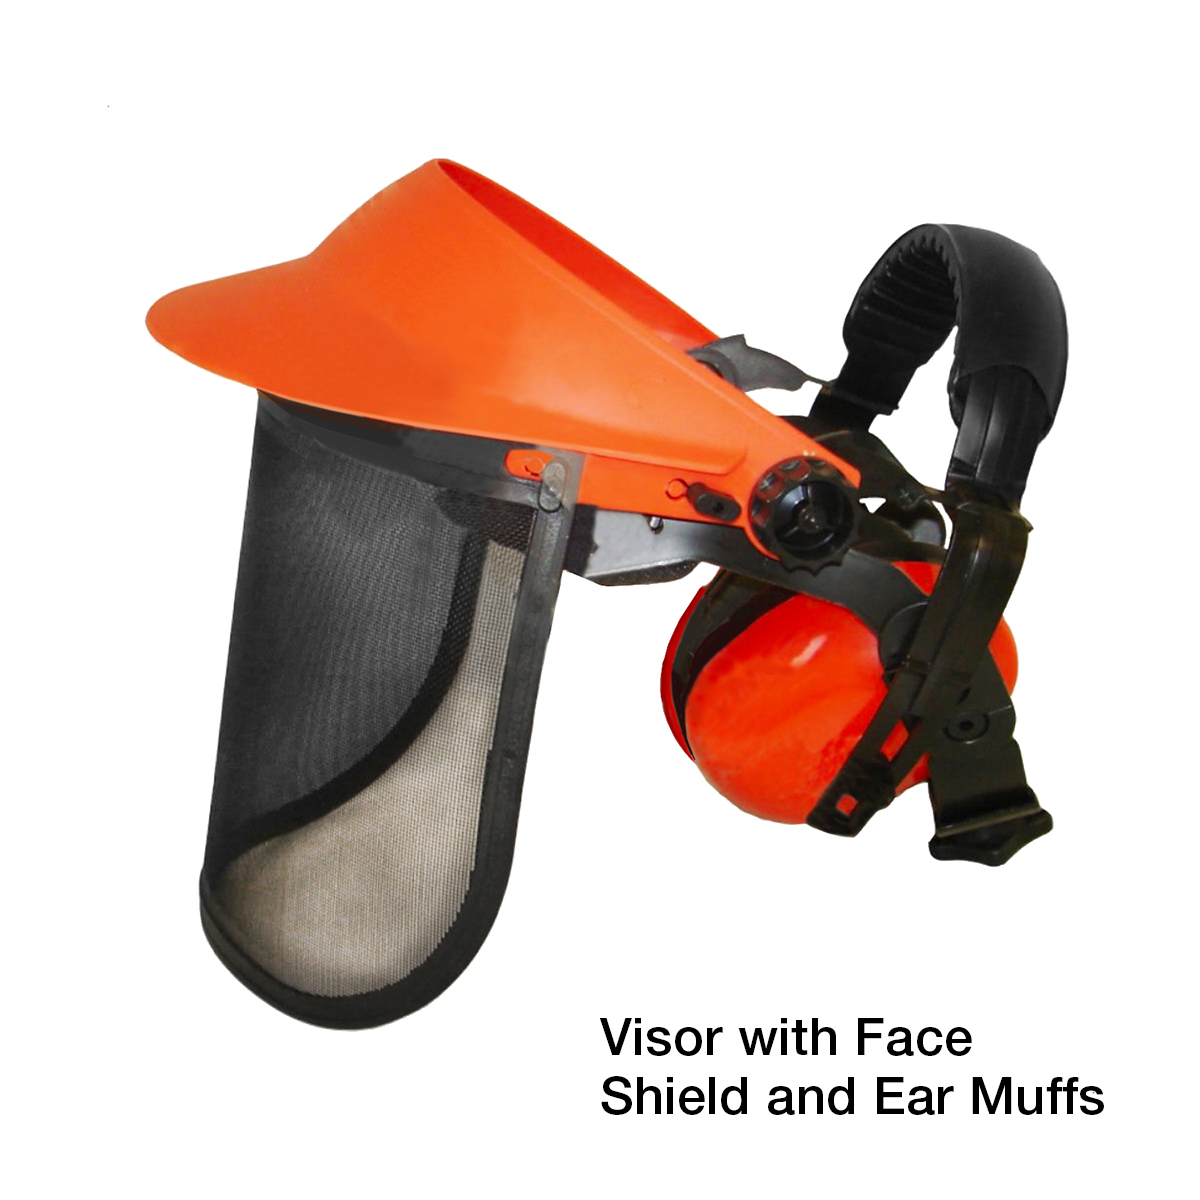 Face Shield and Ear Muffs